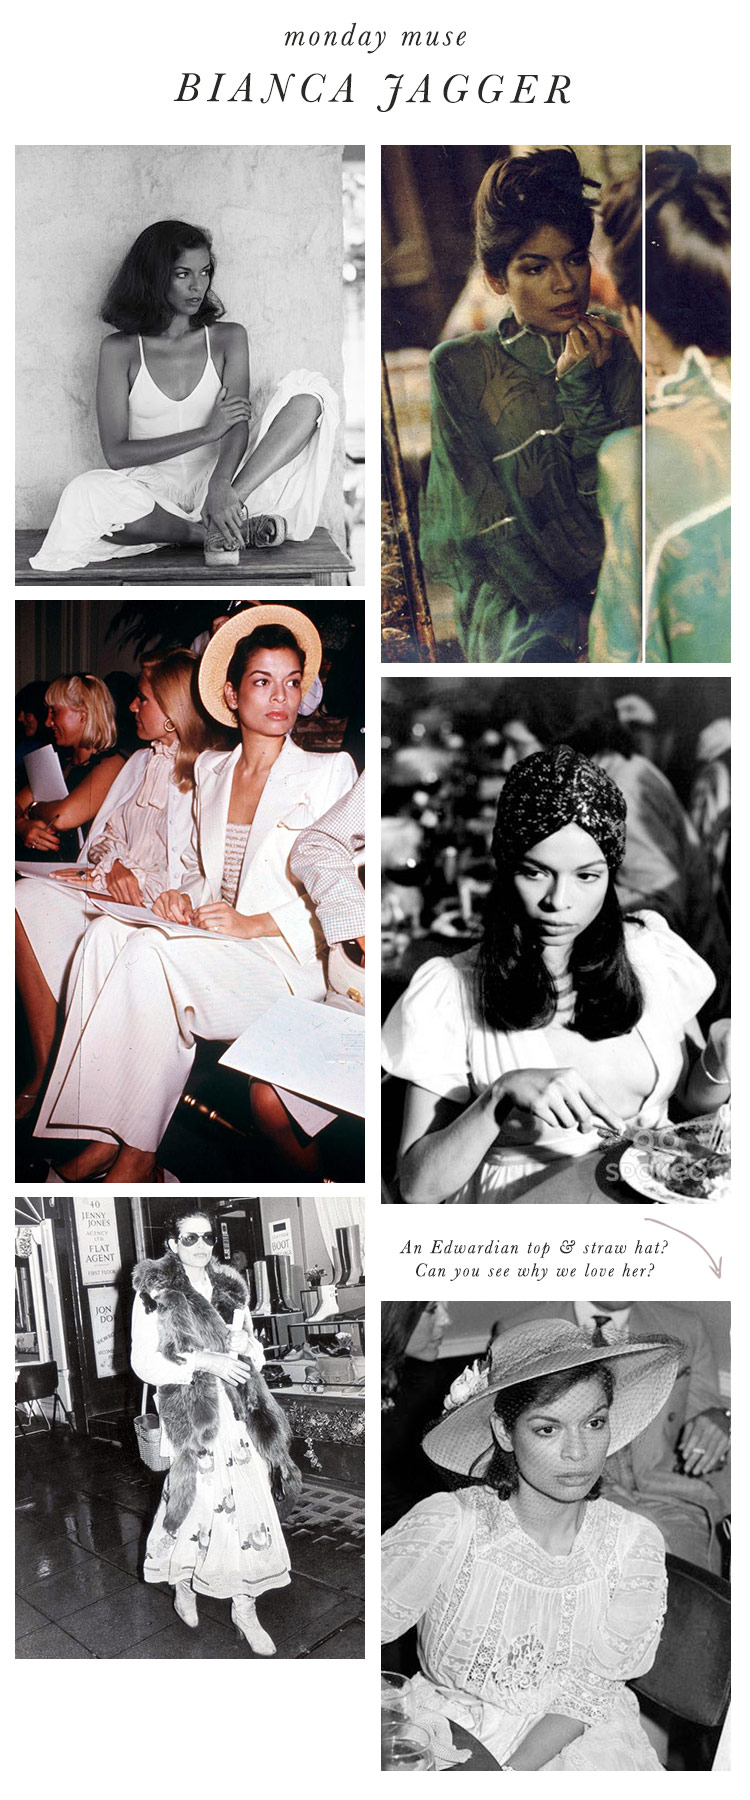 Bianca Jagger / Vintage Style Muse